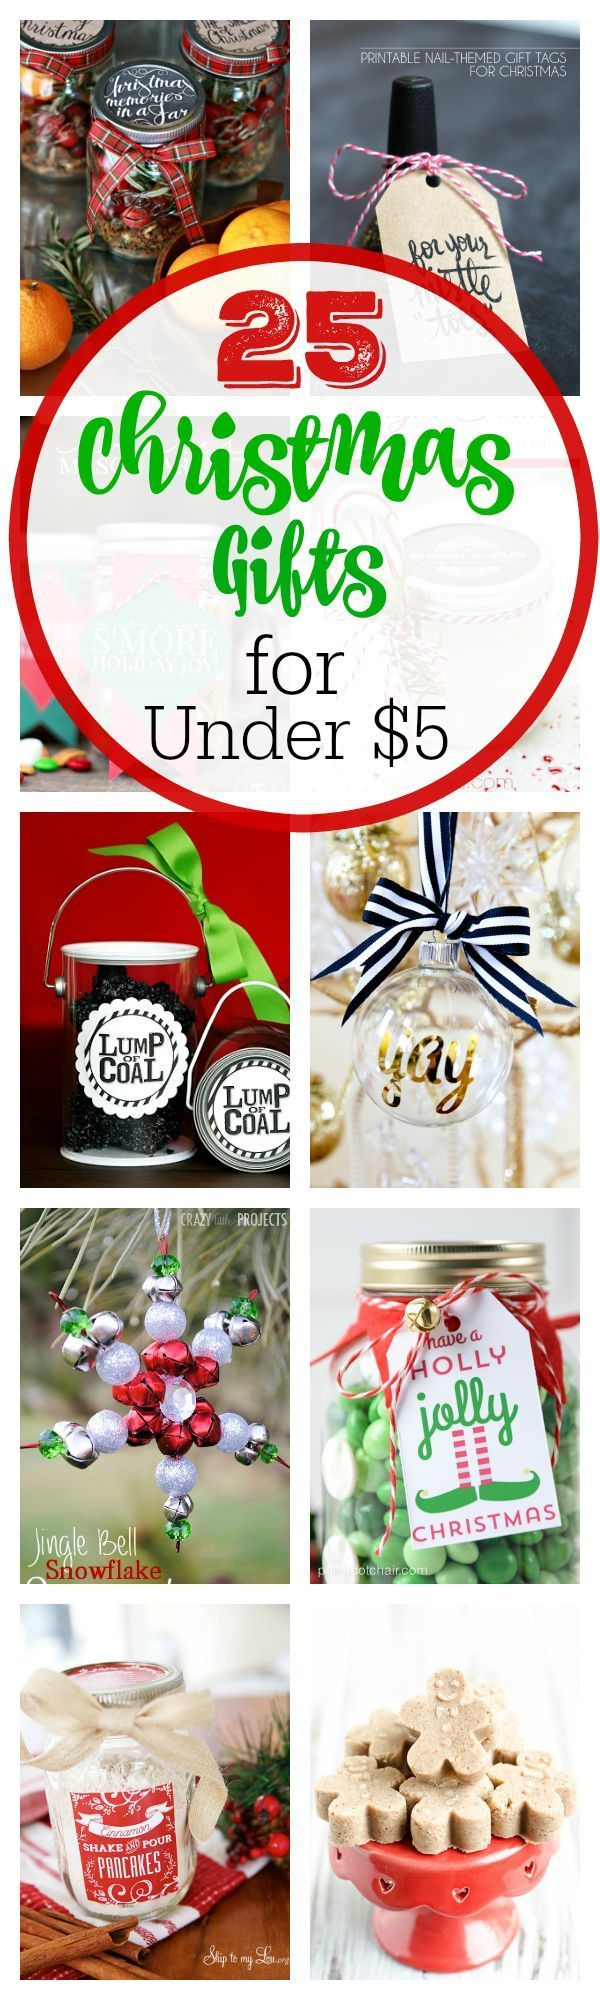 27 Corporate Gift Ideas Cute and Easy DIY Gifts and Client gifts | Gift